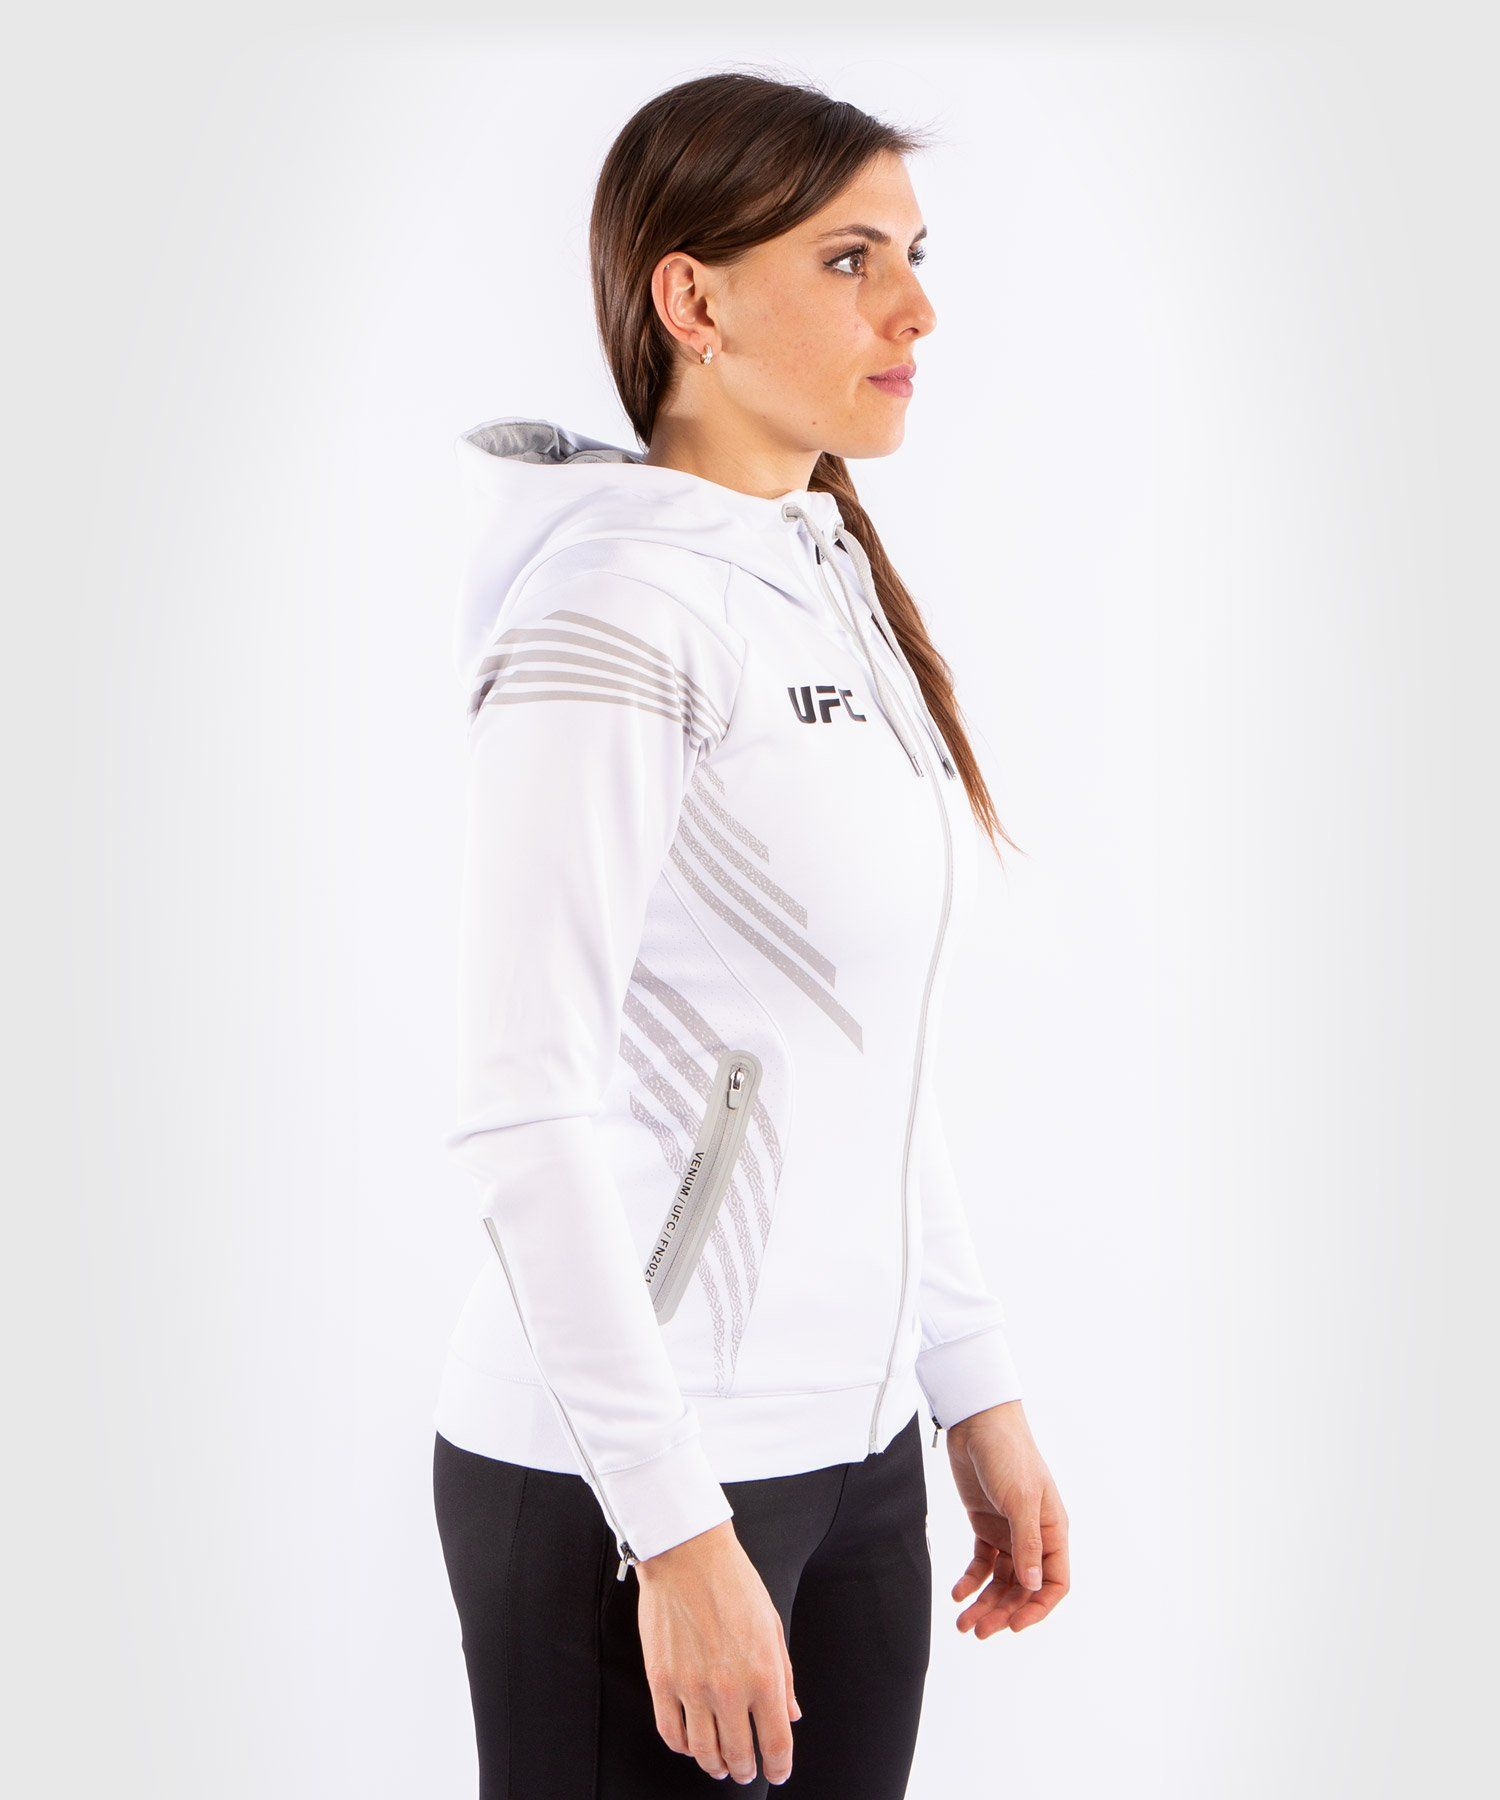 UFC Venum Fighters Authentic Fight Night Women's Walkout Hoodie - White